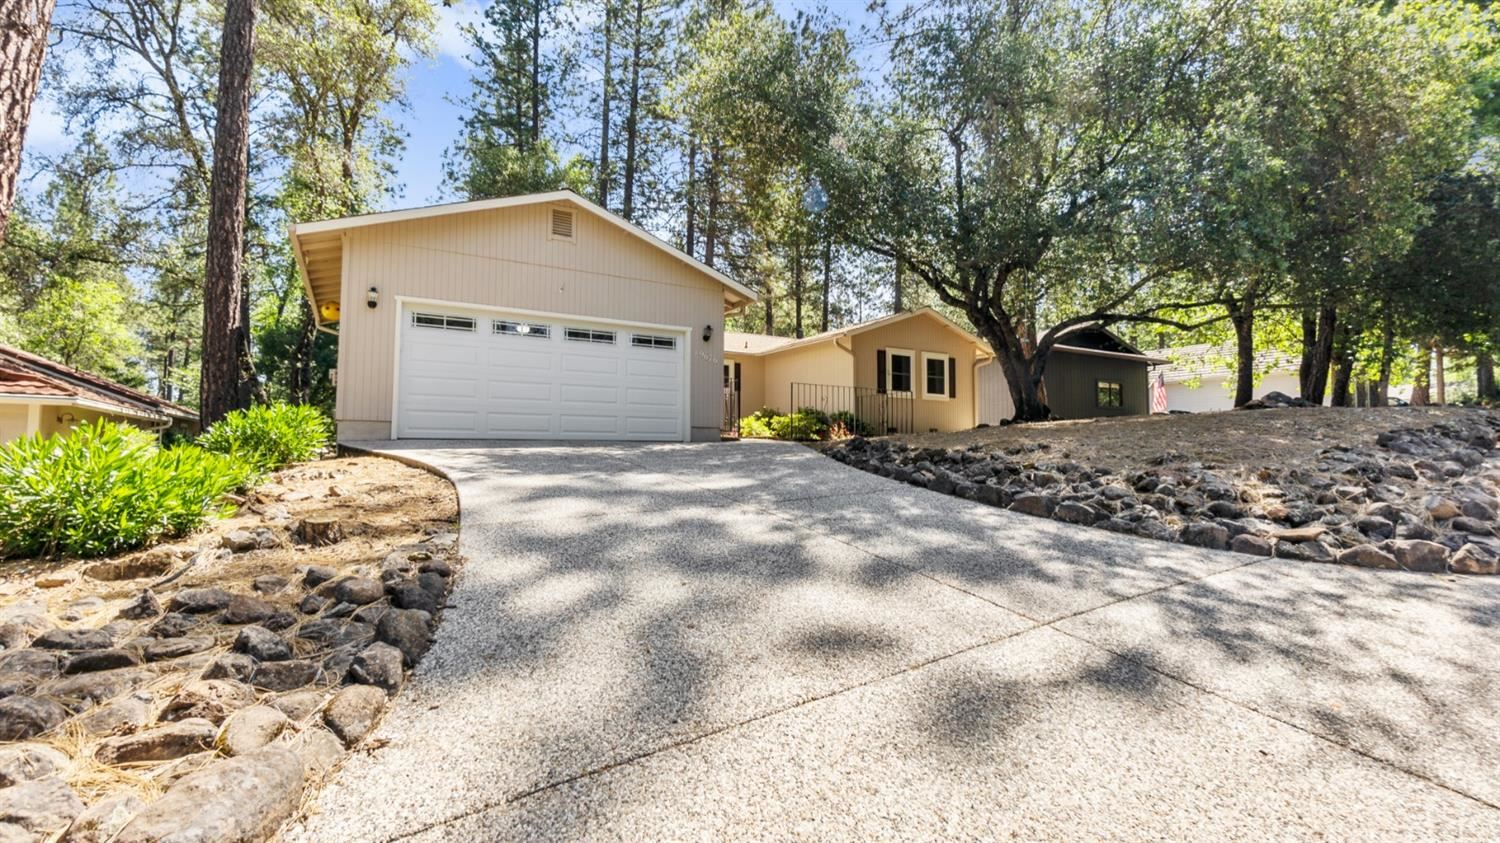 Photo of 19676 Chaparral Circle, Penn Valley, CA 95946 (MLS # 221049264)